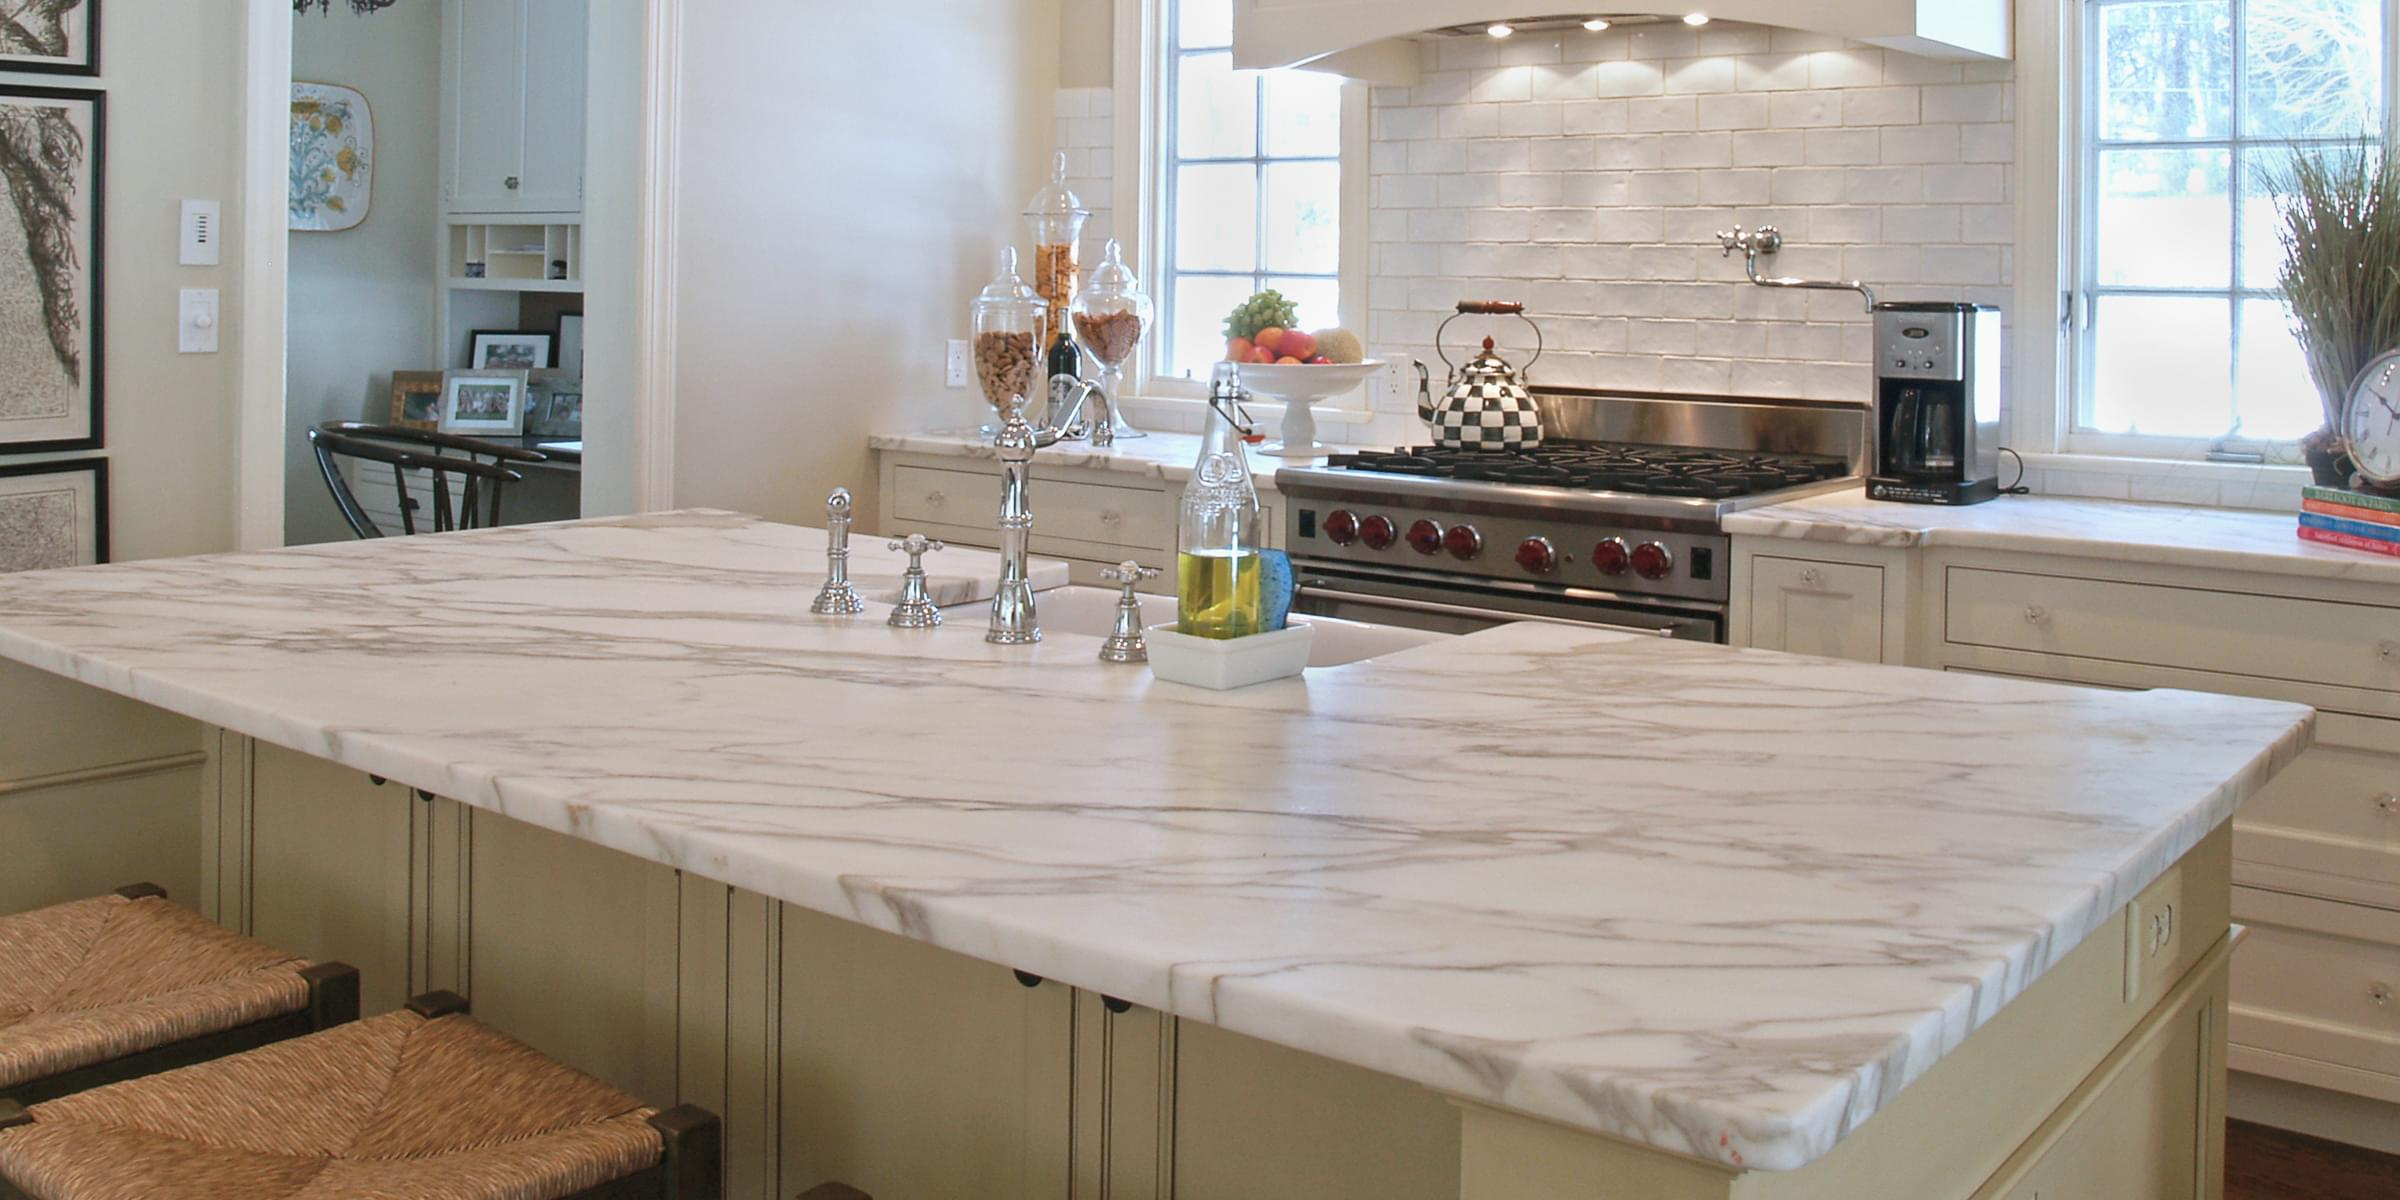 Superieur Onur Marble Granite | Fairless Hills PA. West Chester PA